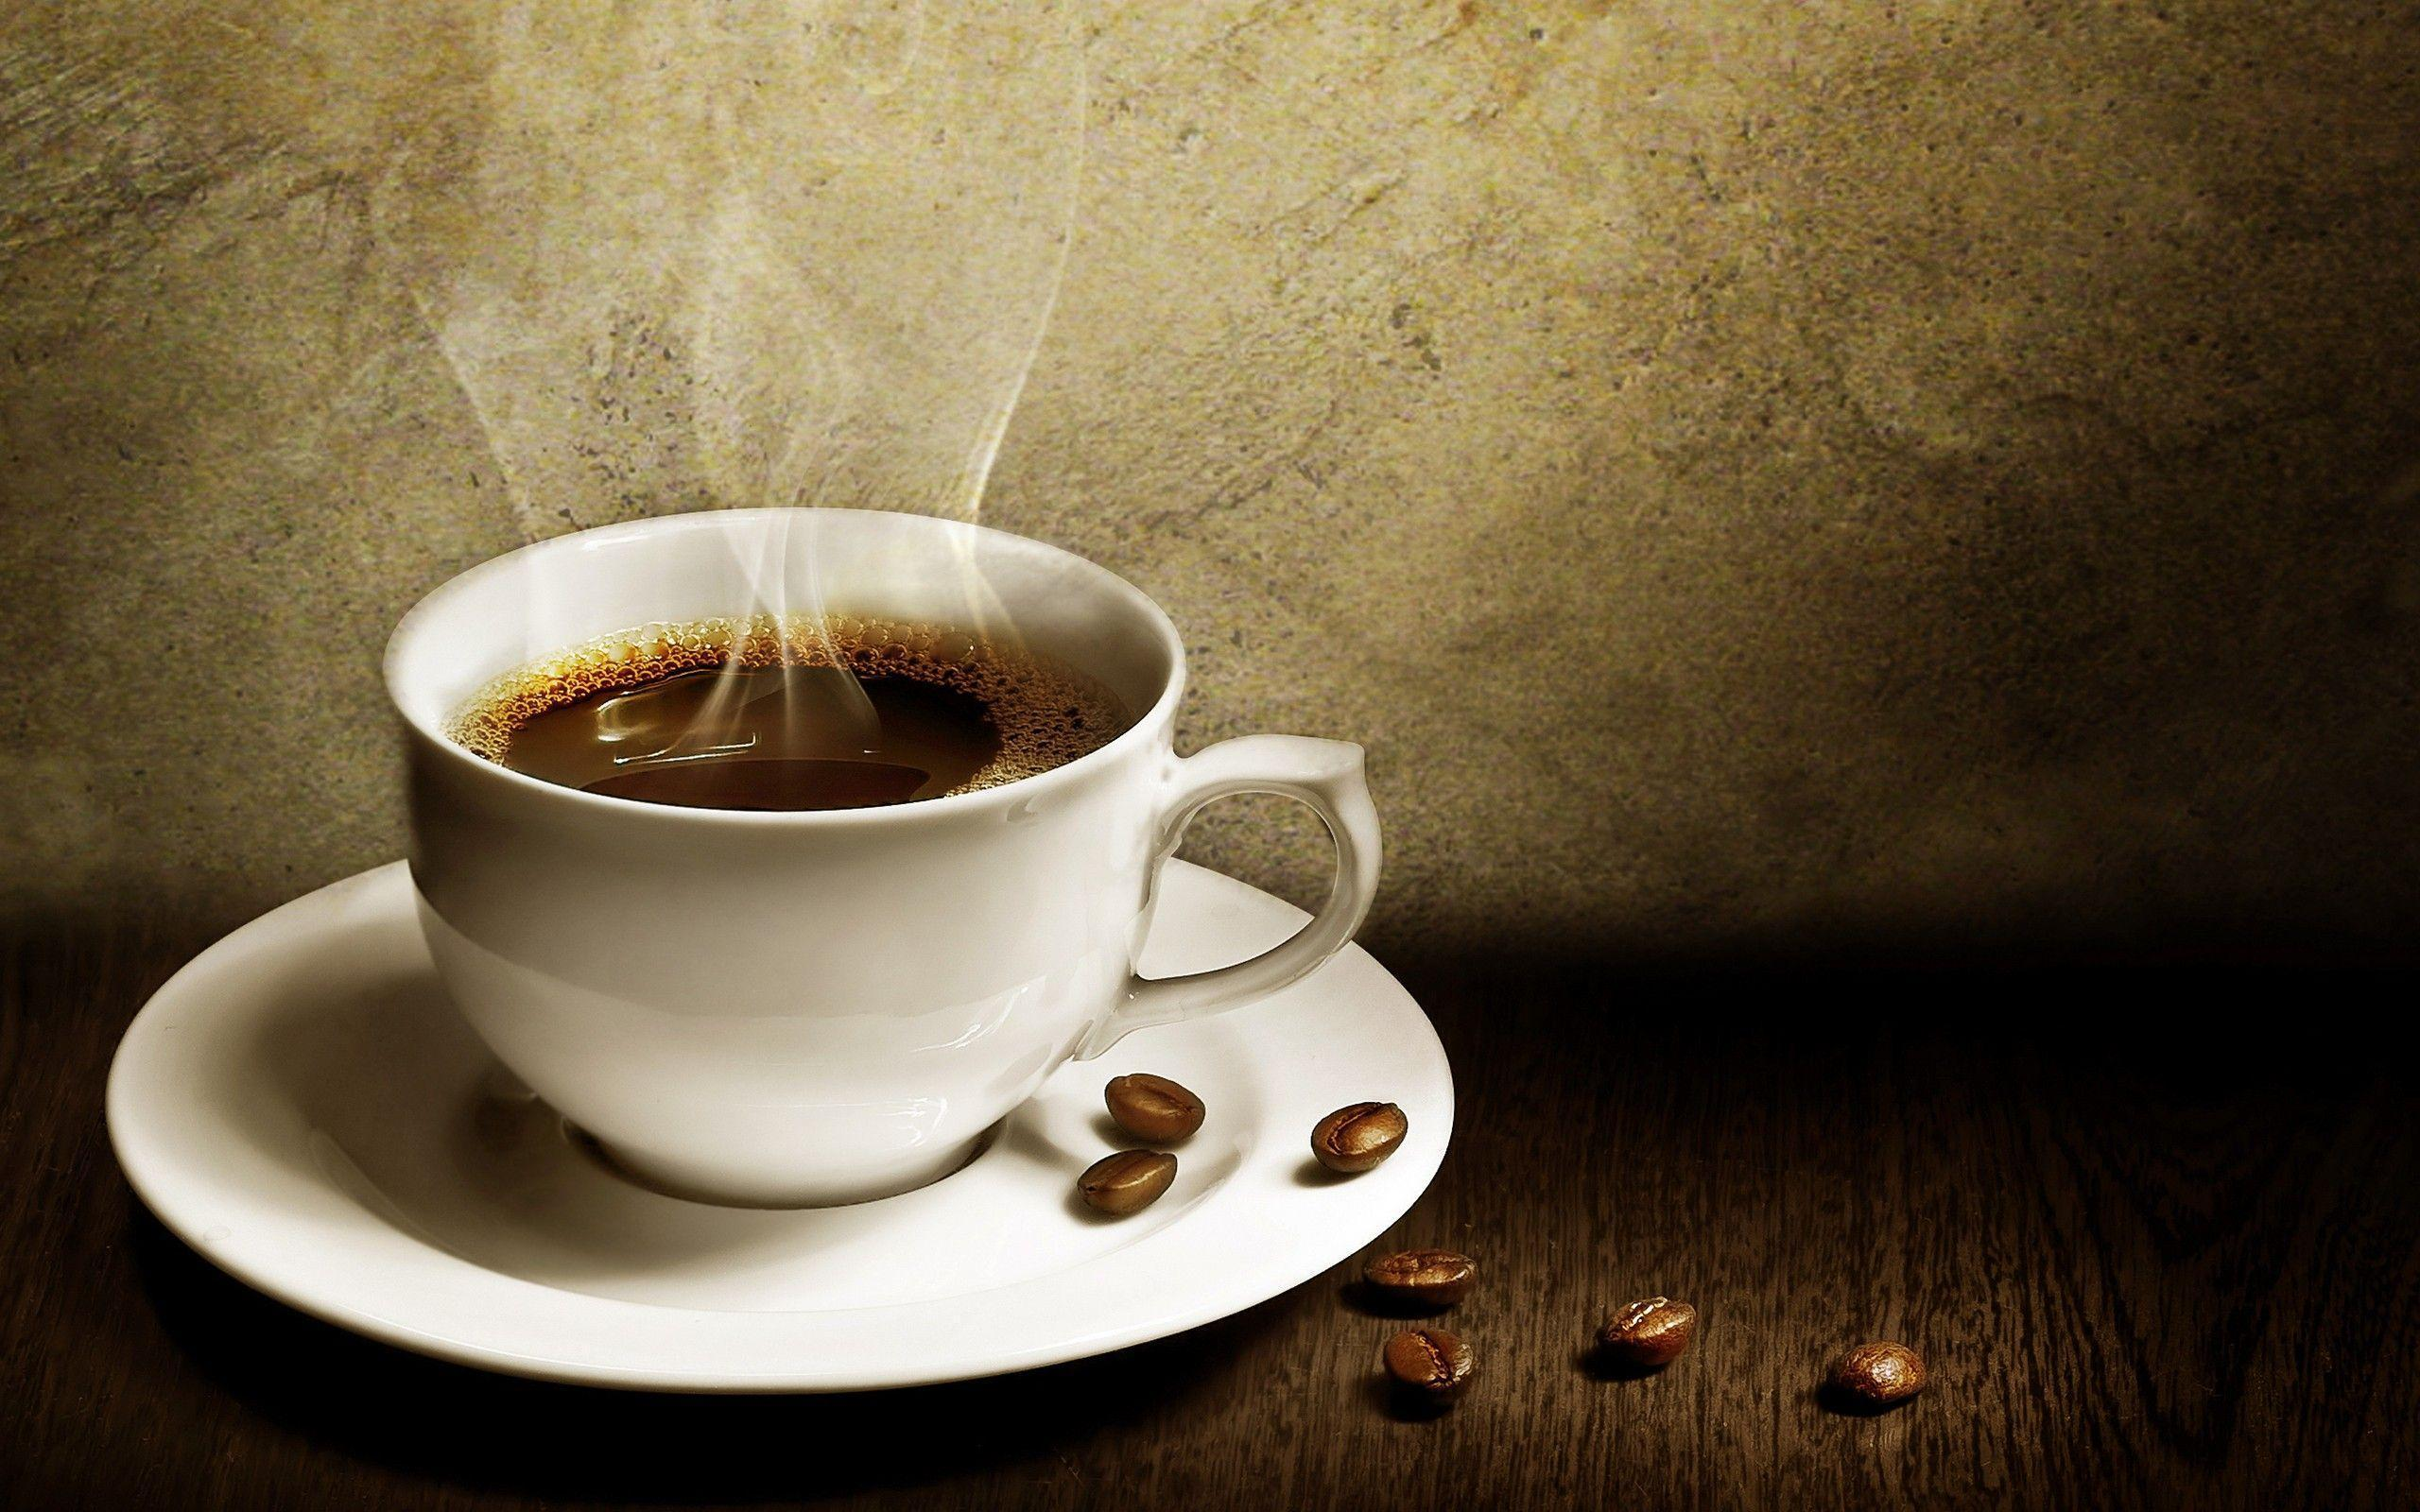 ... images for coffee cup wallpaper hd ...